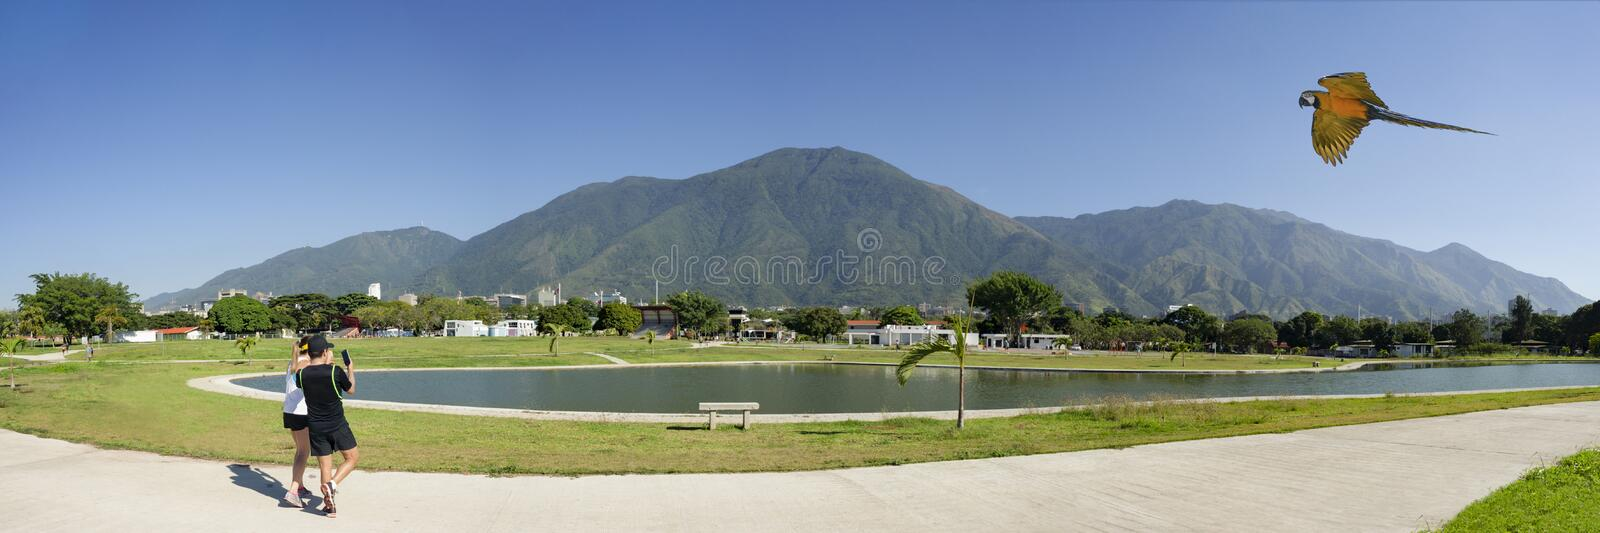 View of the iconic Caracas mountain el Avila or Waraira Repano and flying macaw.  royalty free stock photo